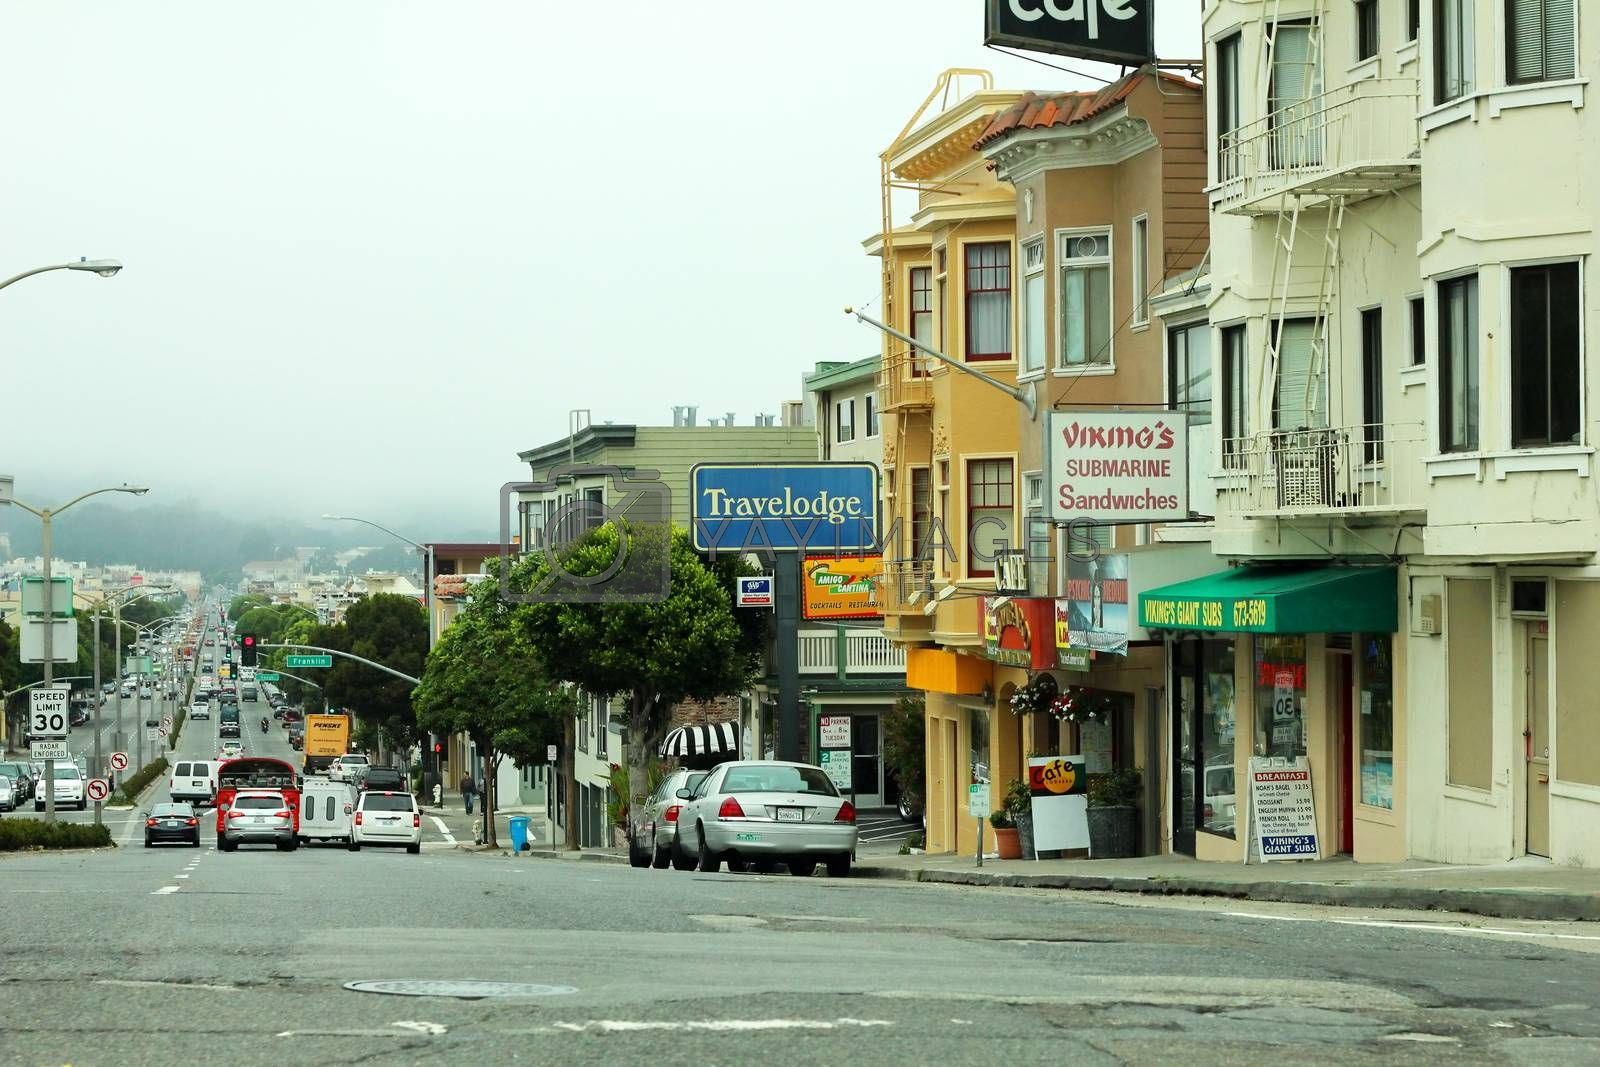 San Francisco, CA, USA - September 13, 2011: view of the street in the future with fog in the background, characteristic of San Francisco